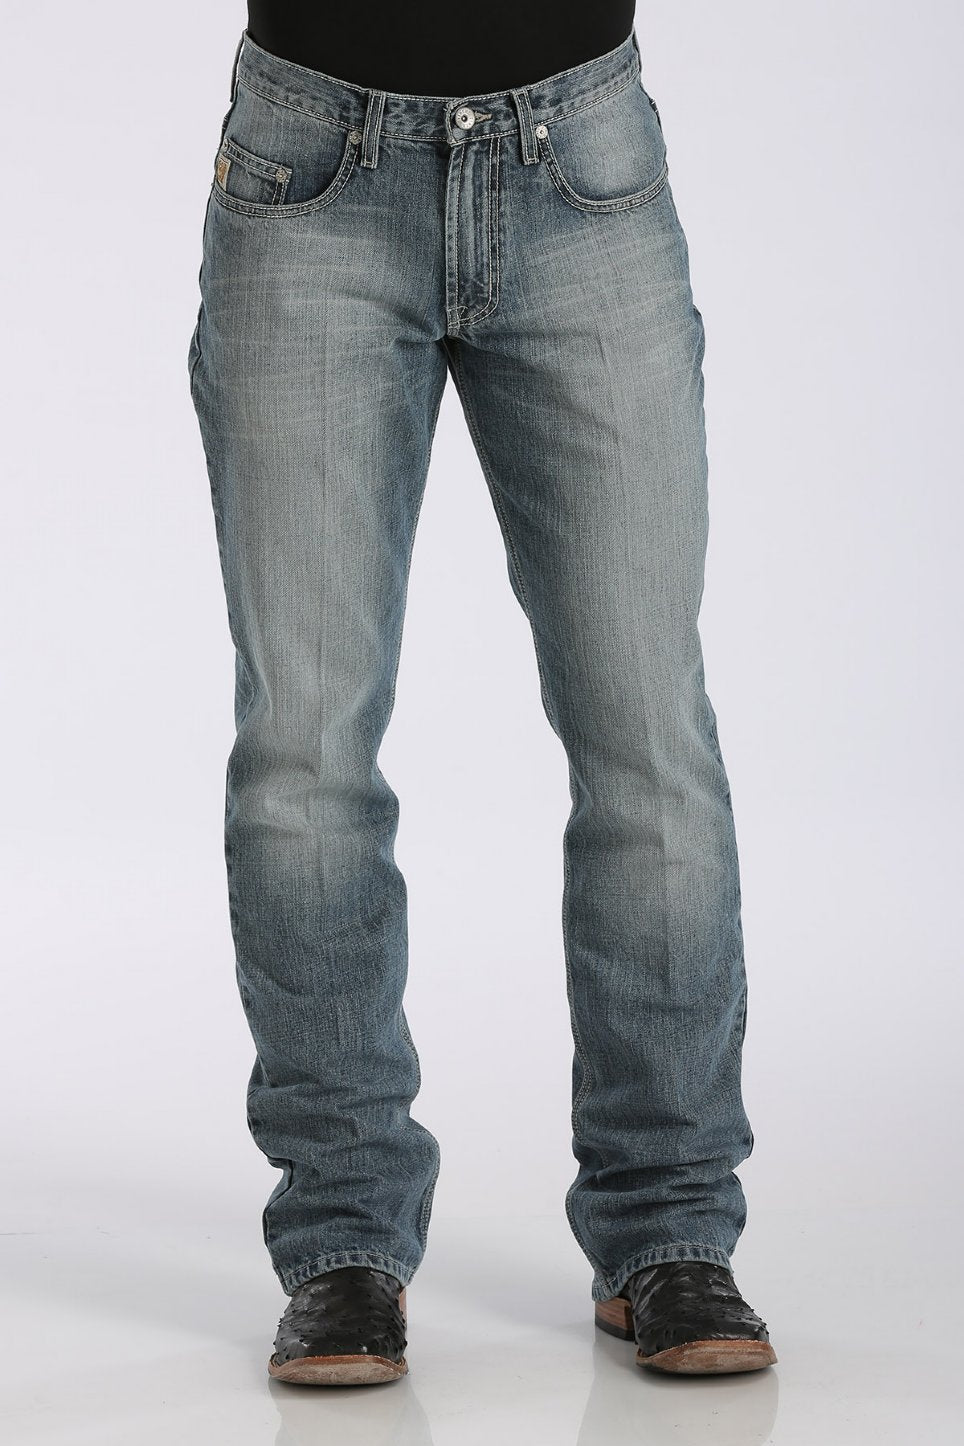 Cinch Dooley Men's Relaxed Fit Jean